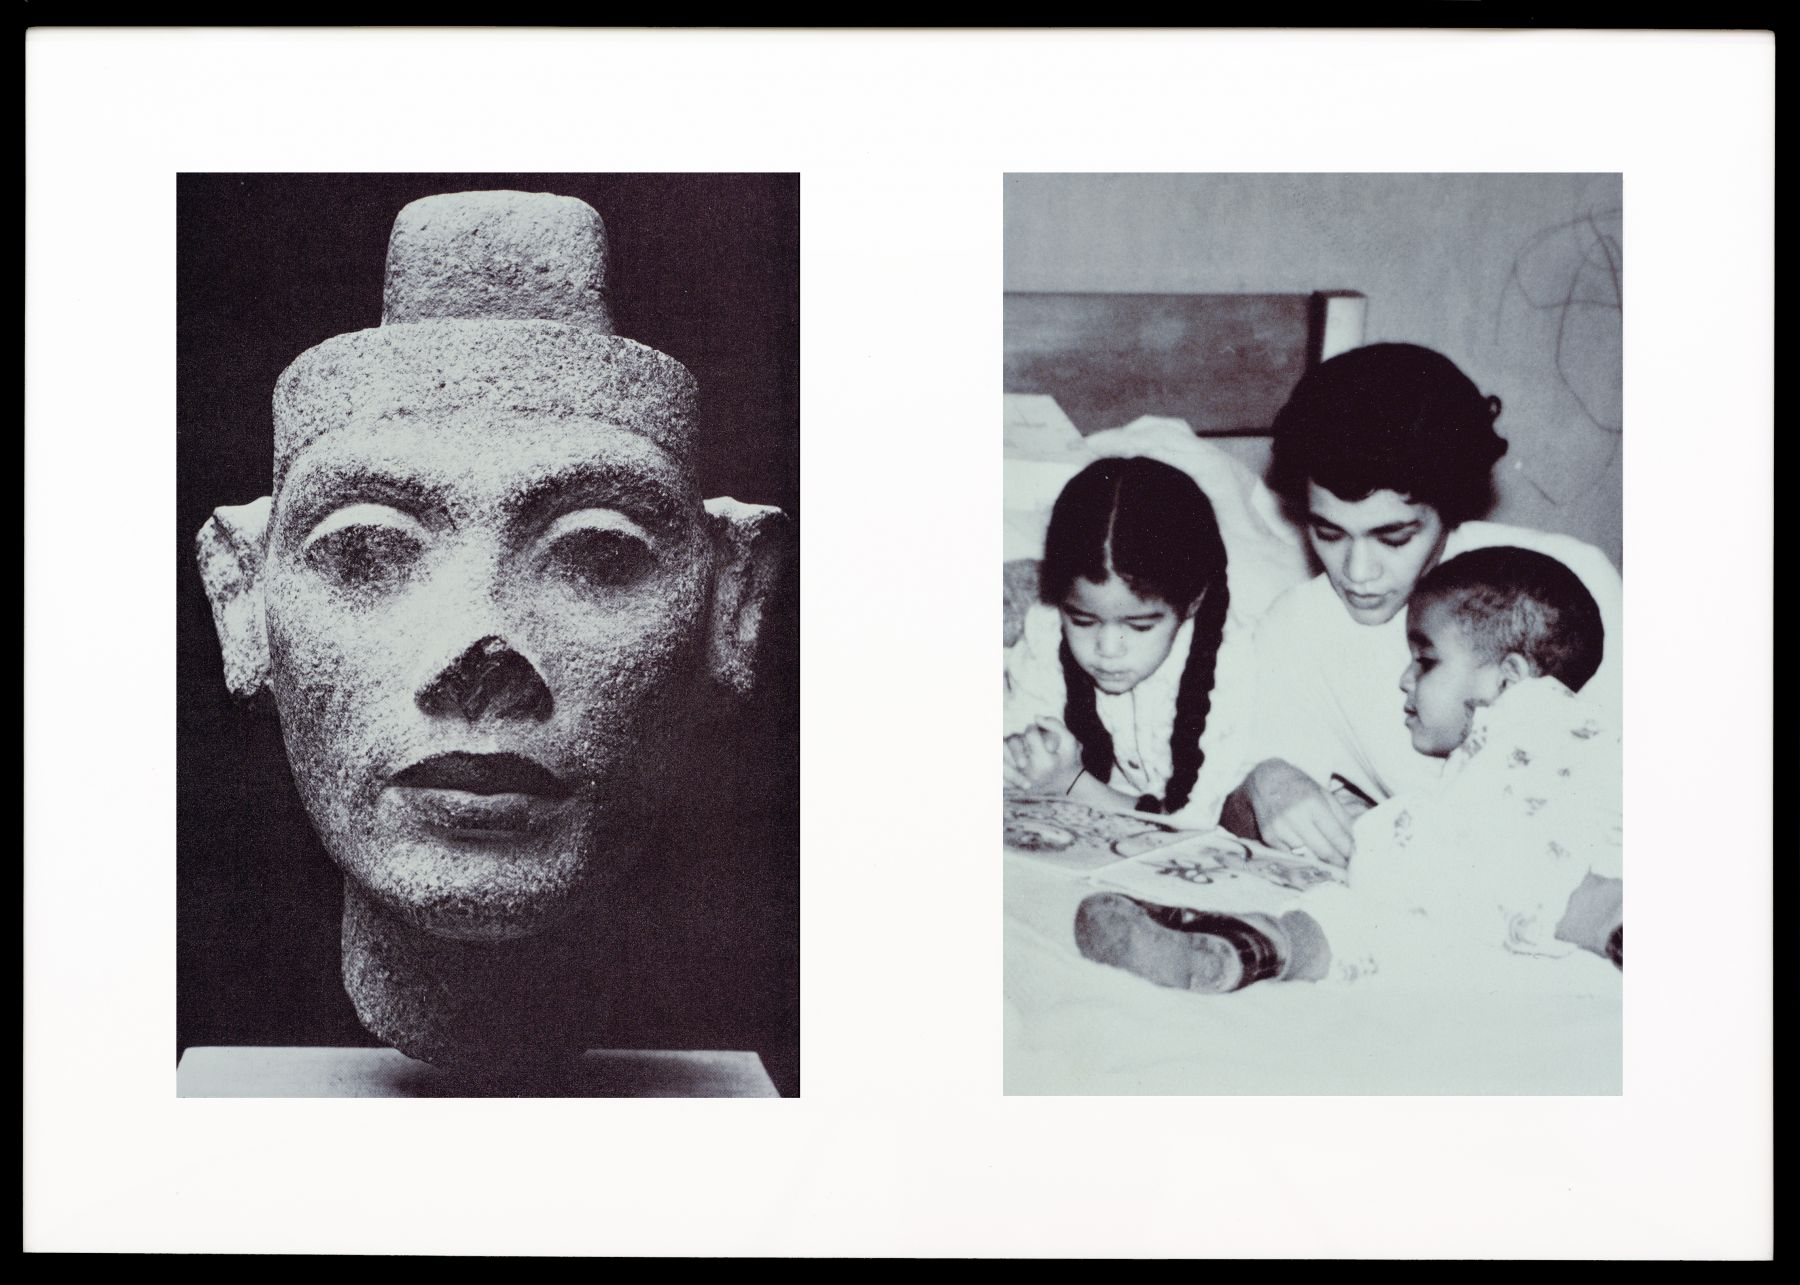 Miscegenated Family Album (Motherhood), L: Nefertiti; R: Devonia reading to Candace and Edward, Jr., 1980/1994, Cibachrome prints, 26h x 37w in, (66.04h x 93.98w cm)